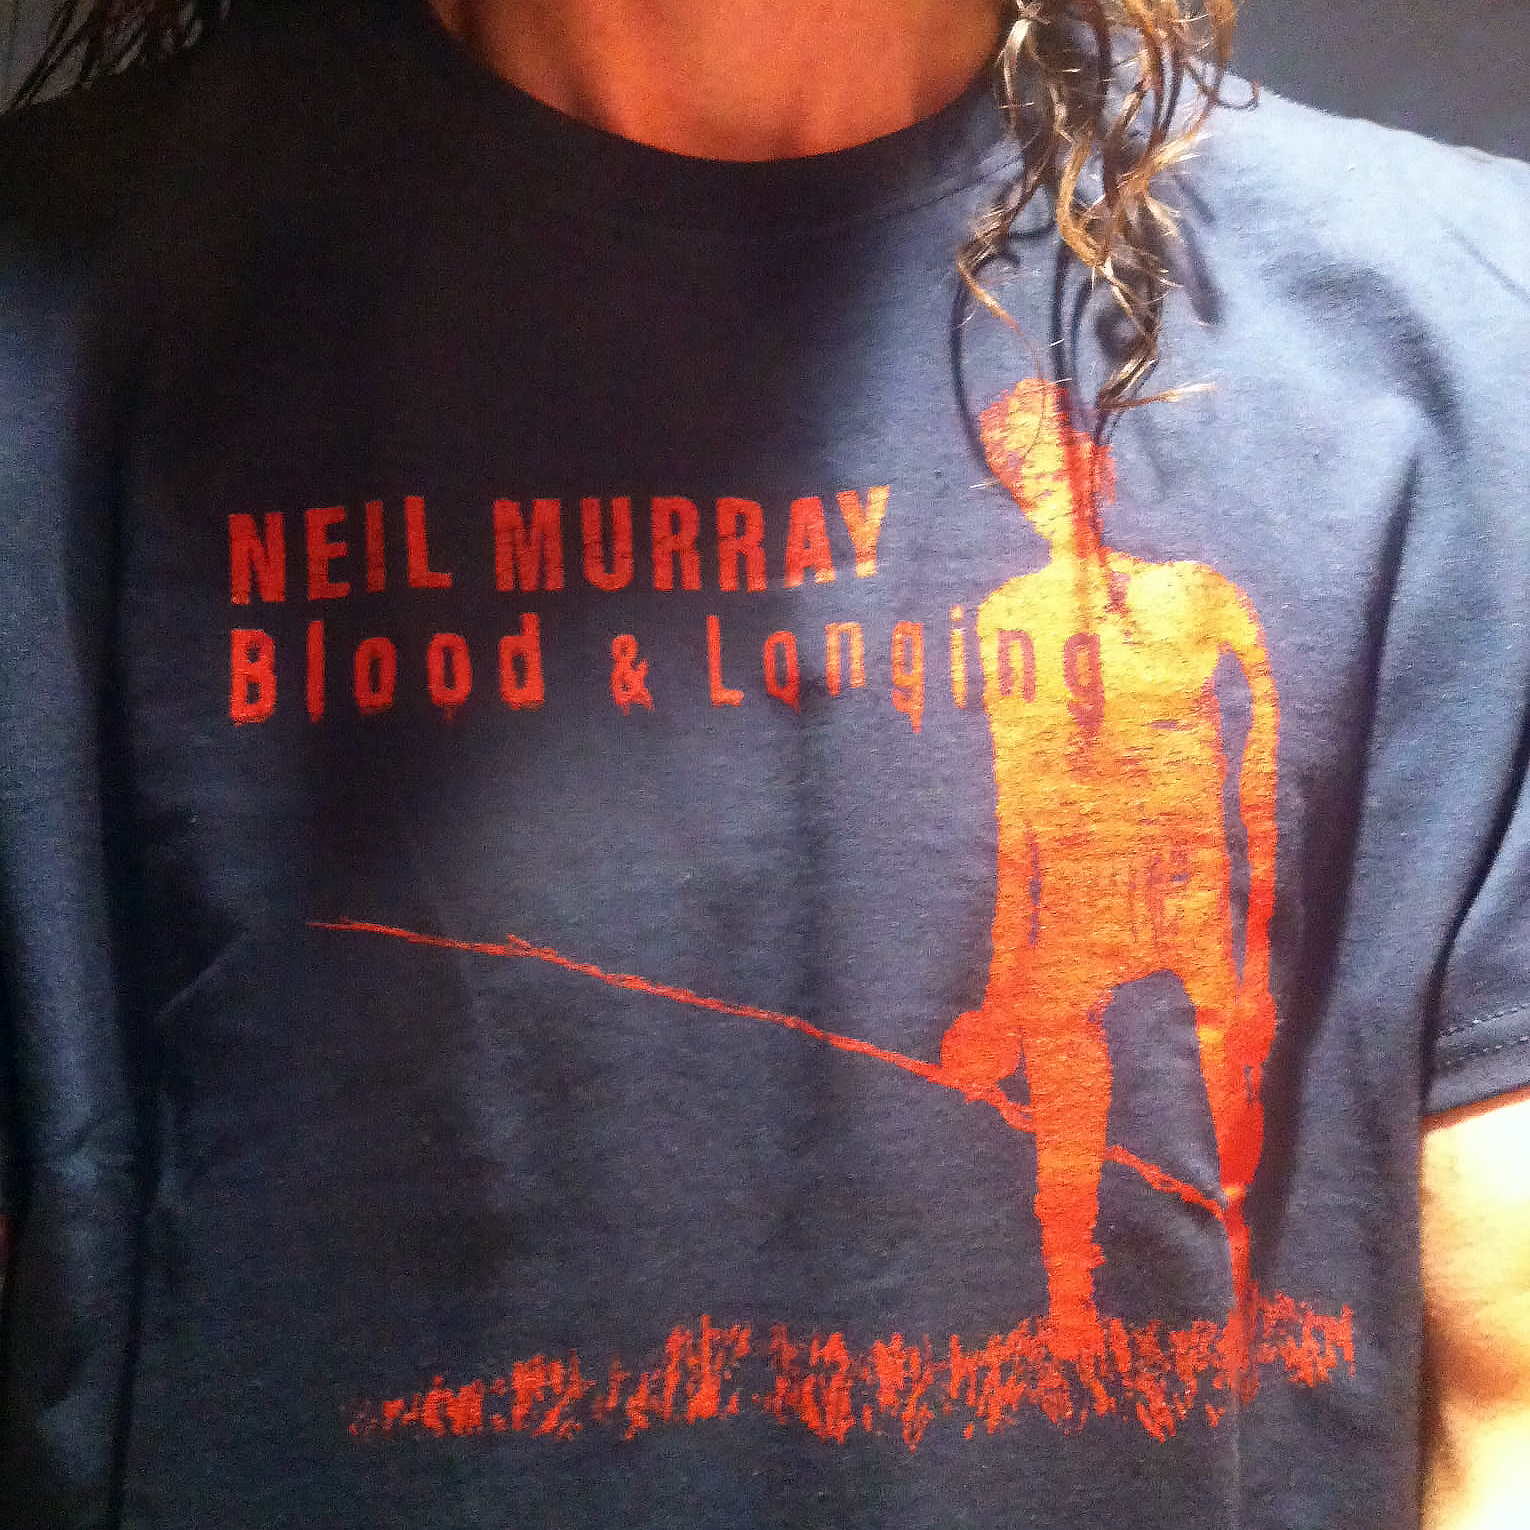 Blood & Longing T-Shirt